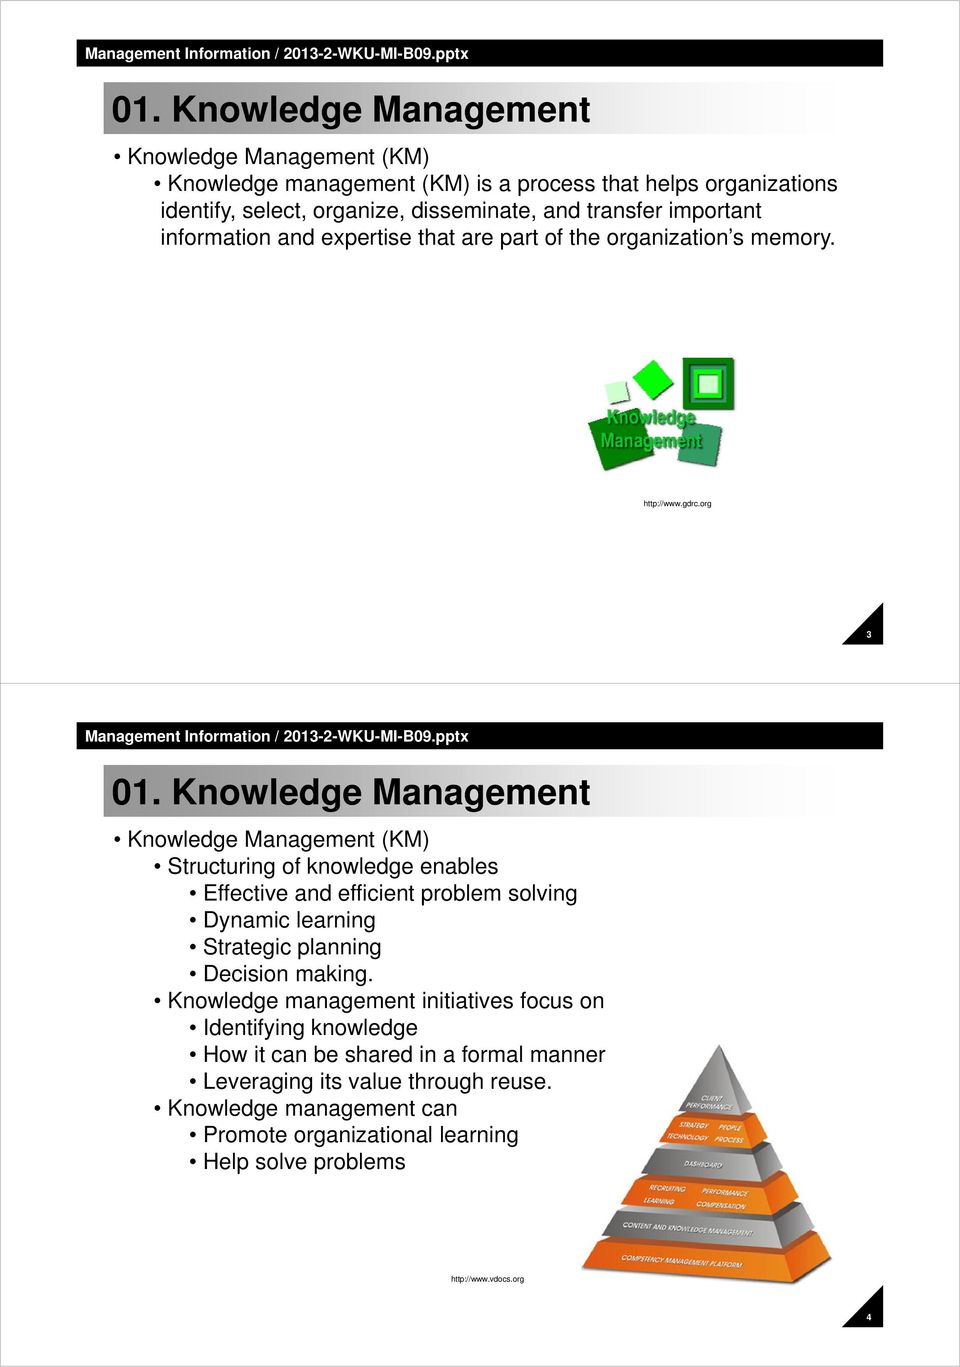 Knowledge Management Knowledge Management (KM) Structuring of knowledge enables Effective and efficient problem solving Dynamic learning Strategic planning Decision making.